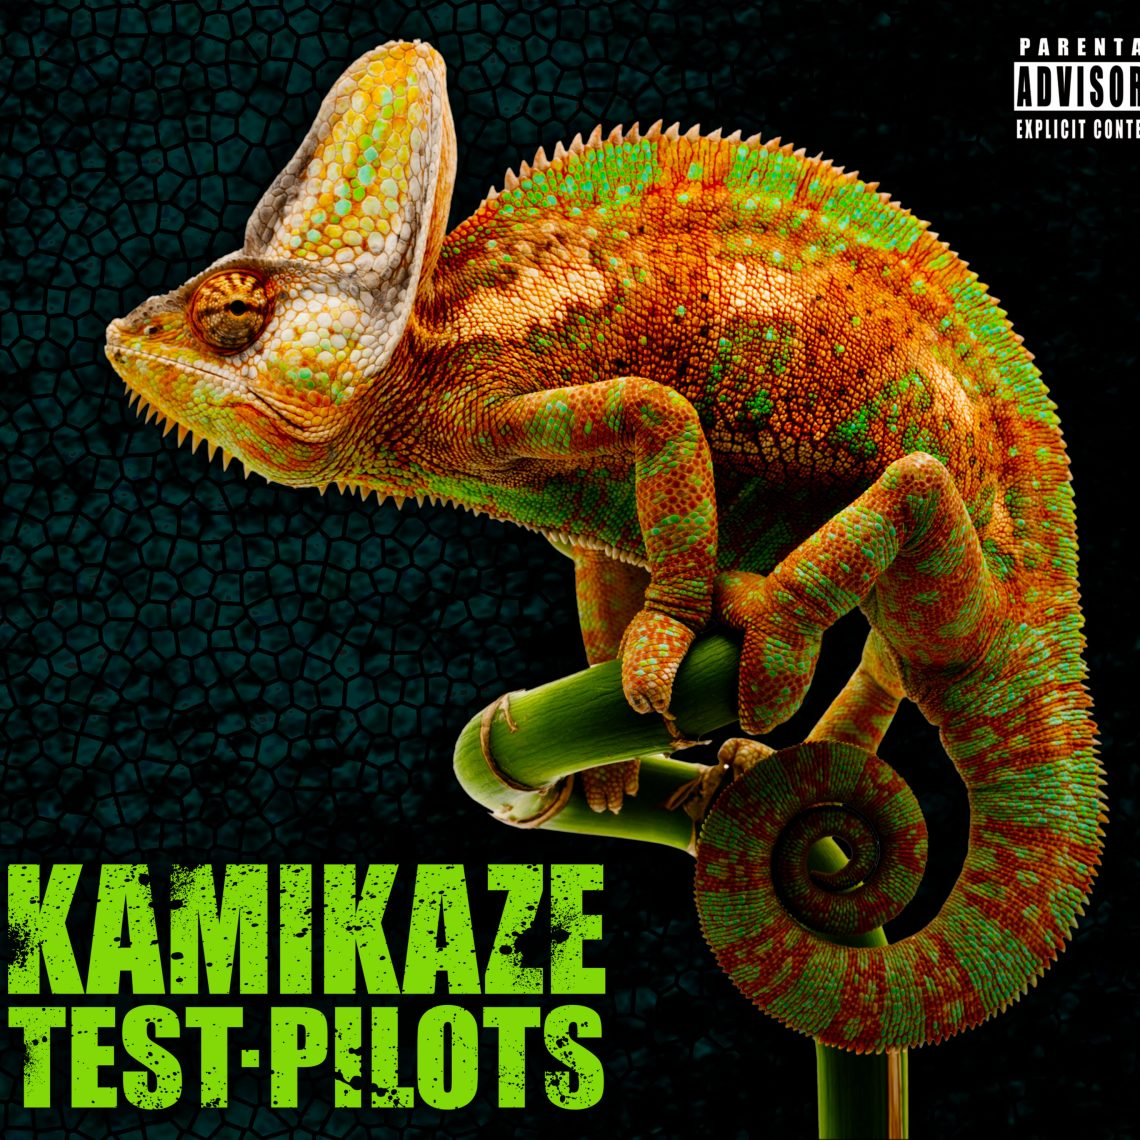 Kamikaze Test Pilots announce their exciting new album